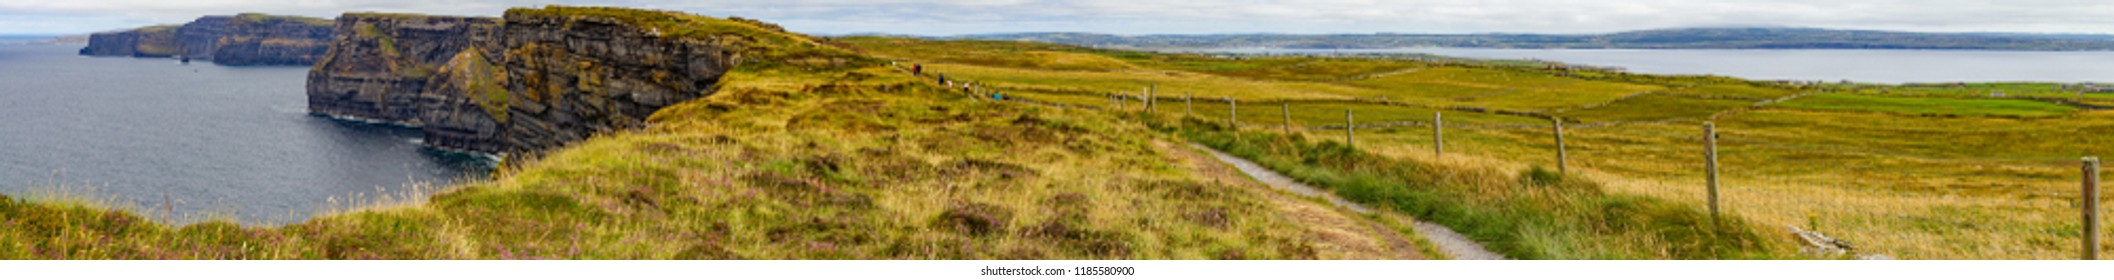 Panorama of Cliff of Moher with farm field and trail, Doolin, Clare, Ireland